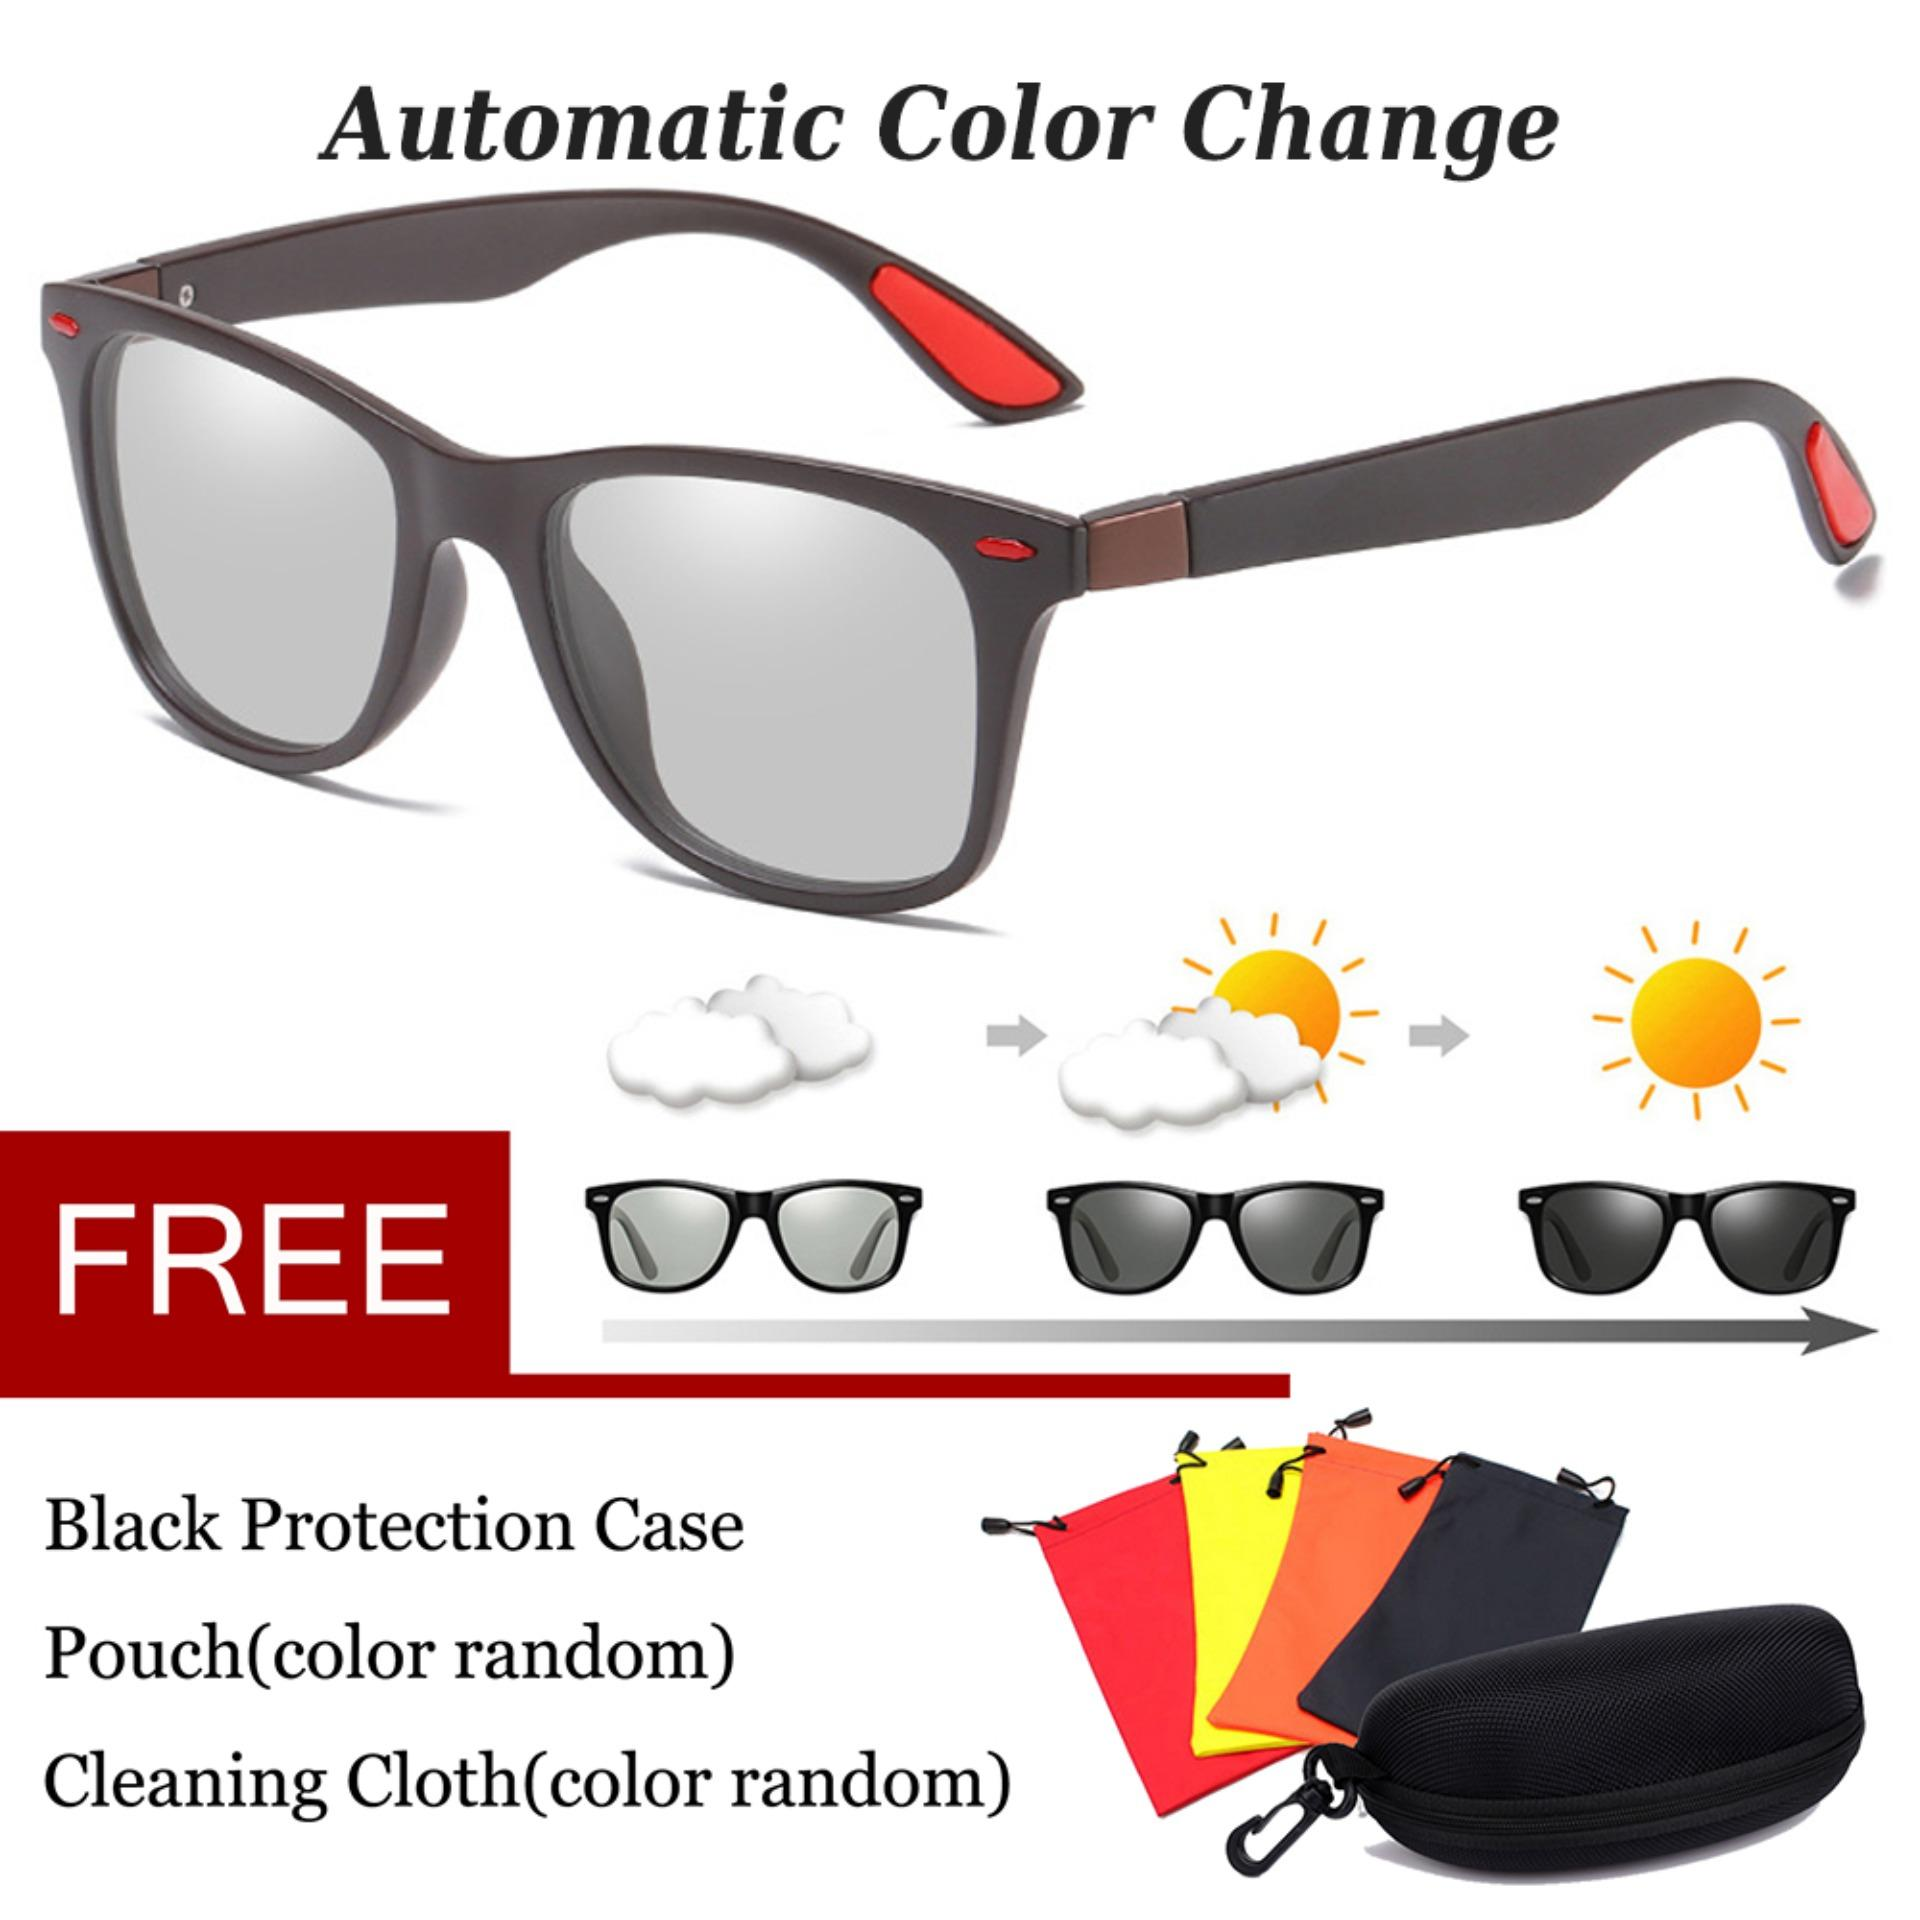 73fbea64fde Photochromic Polarized Sunglasses Discoloration Change Color Lens Eyewear  Anti Glare HD Driving Glasses UV400 569BS